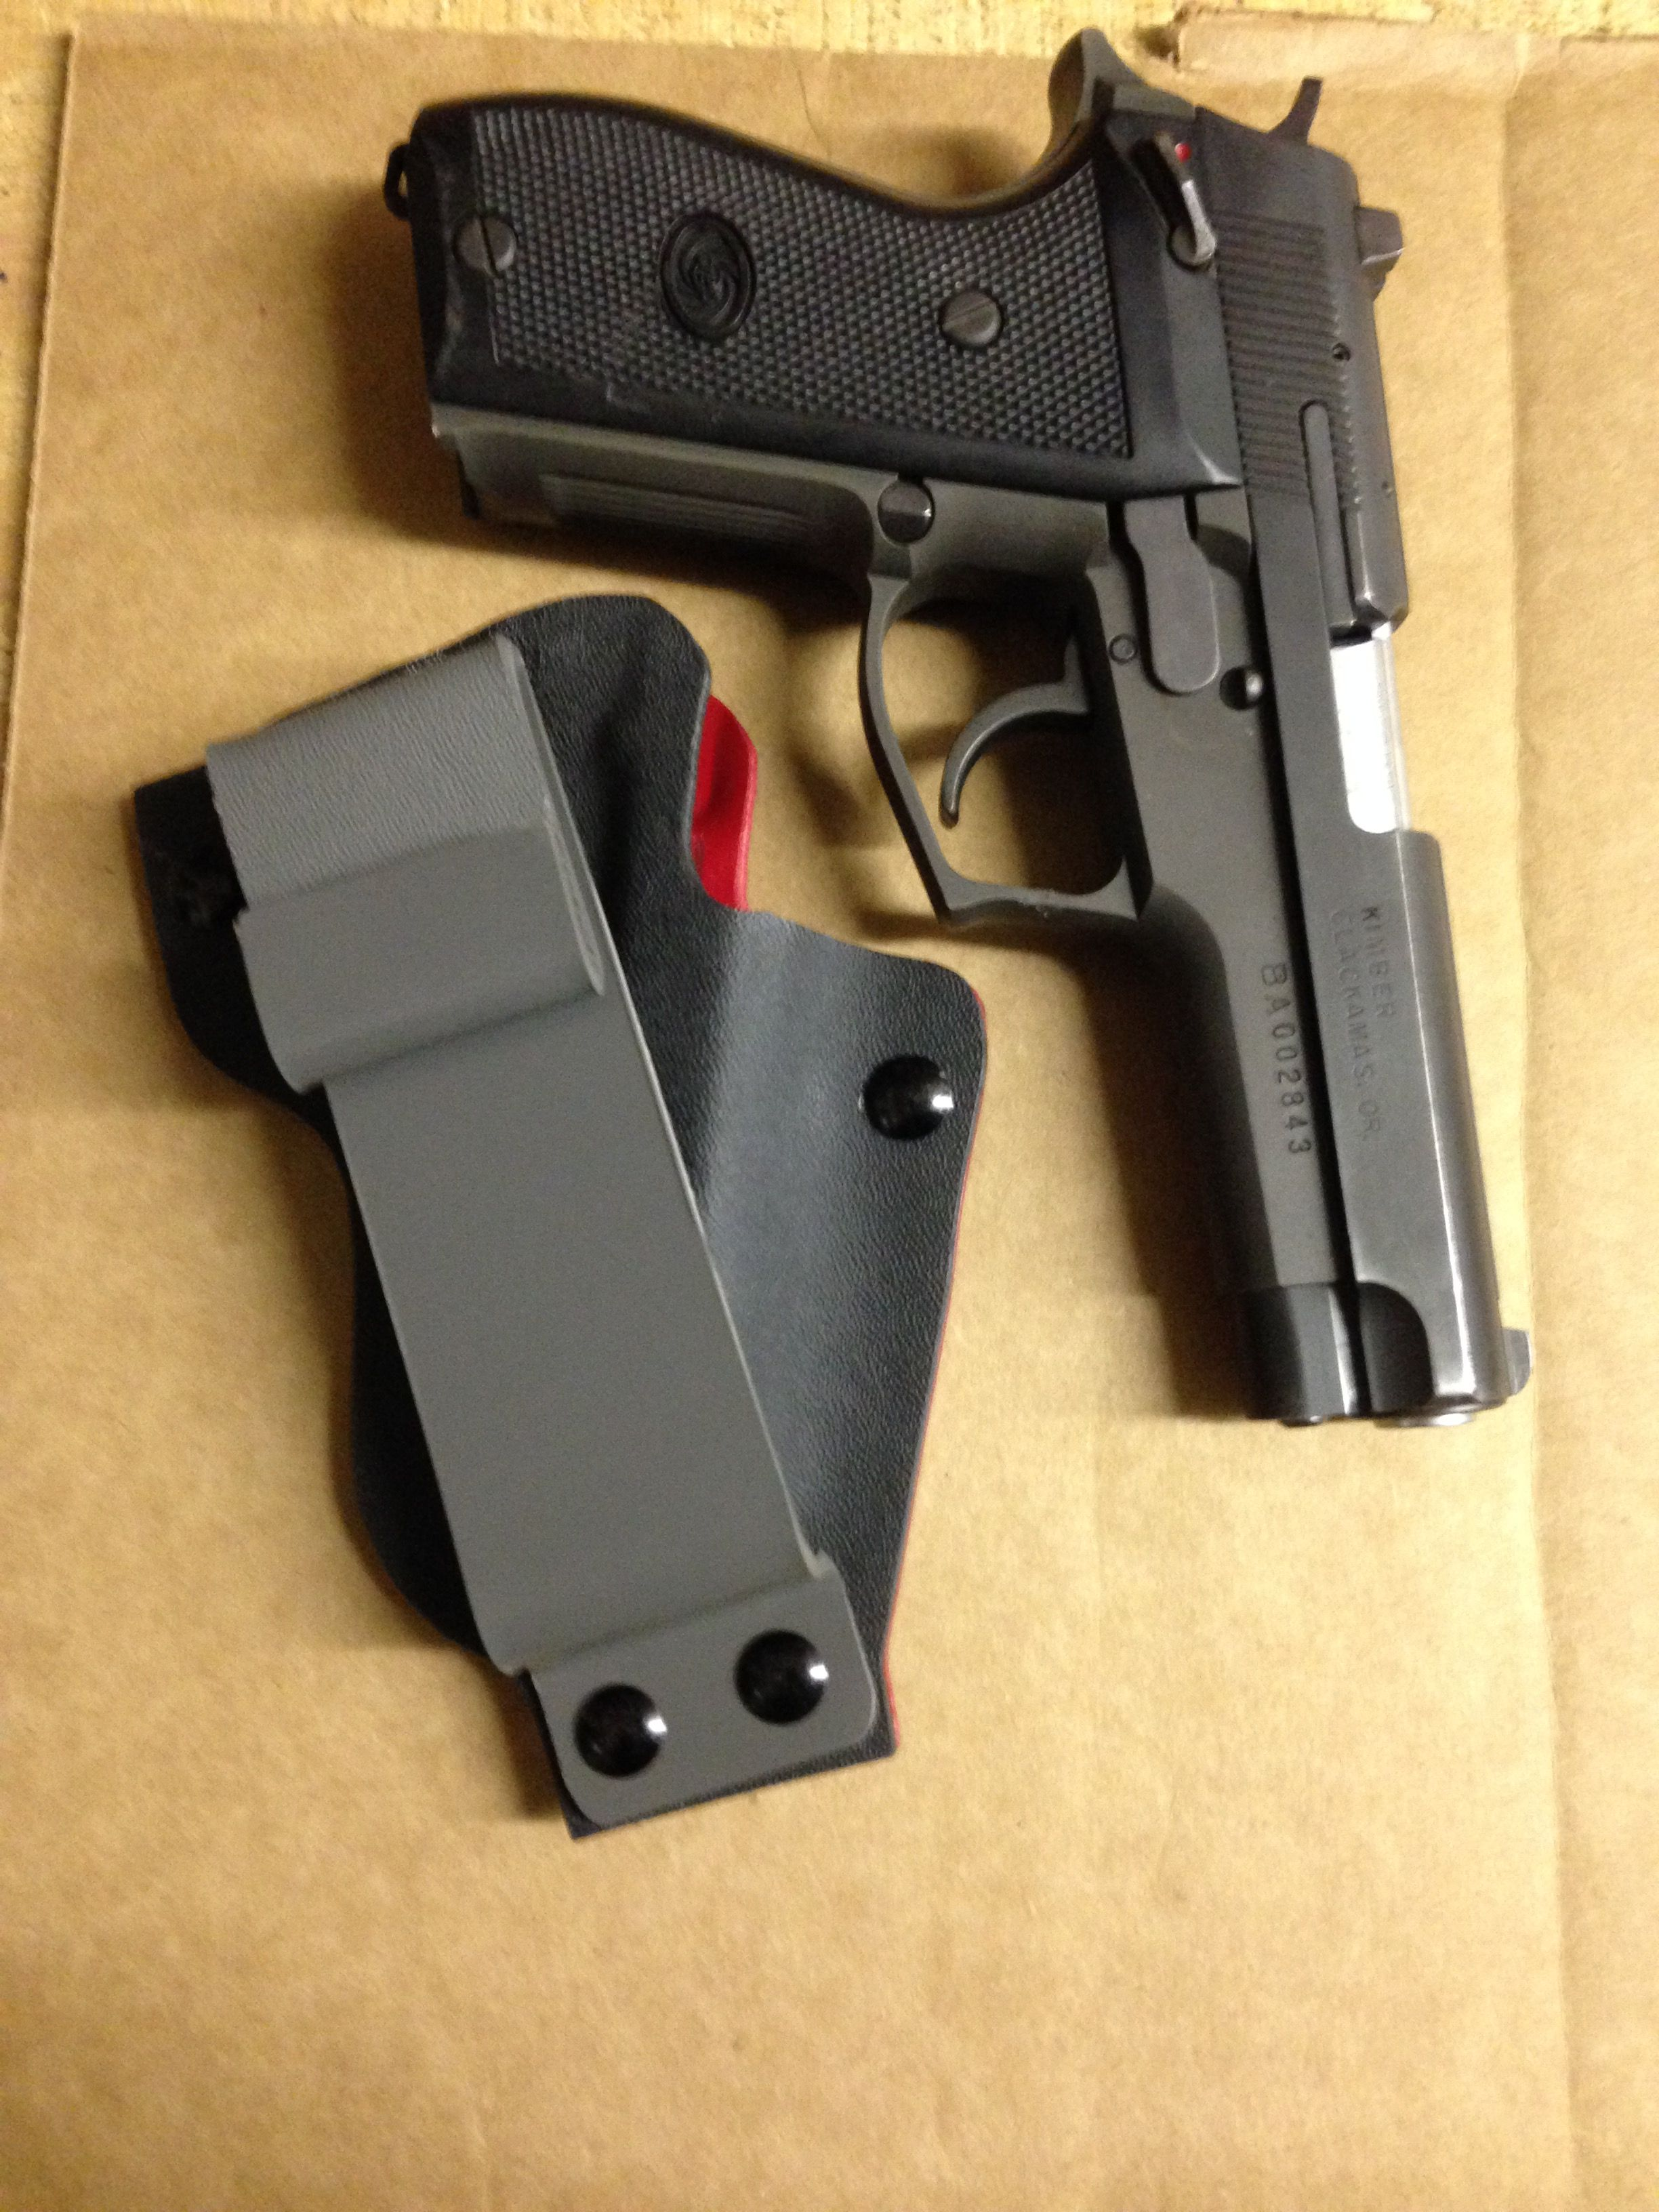 Daewoo DP-51 9mm ambidextrous IWB kydex holster I made todayLoading